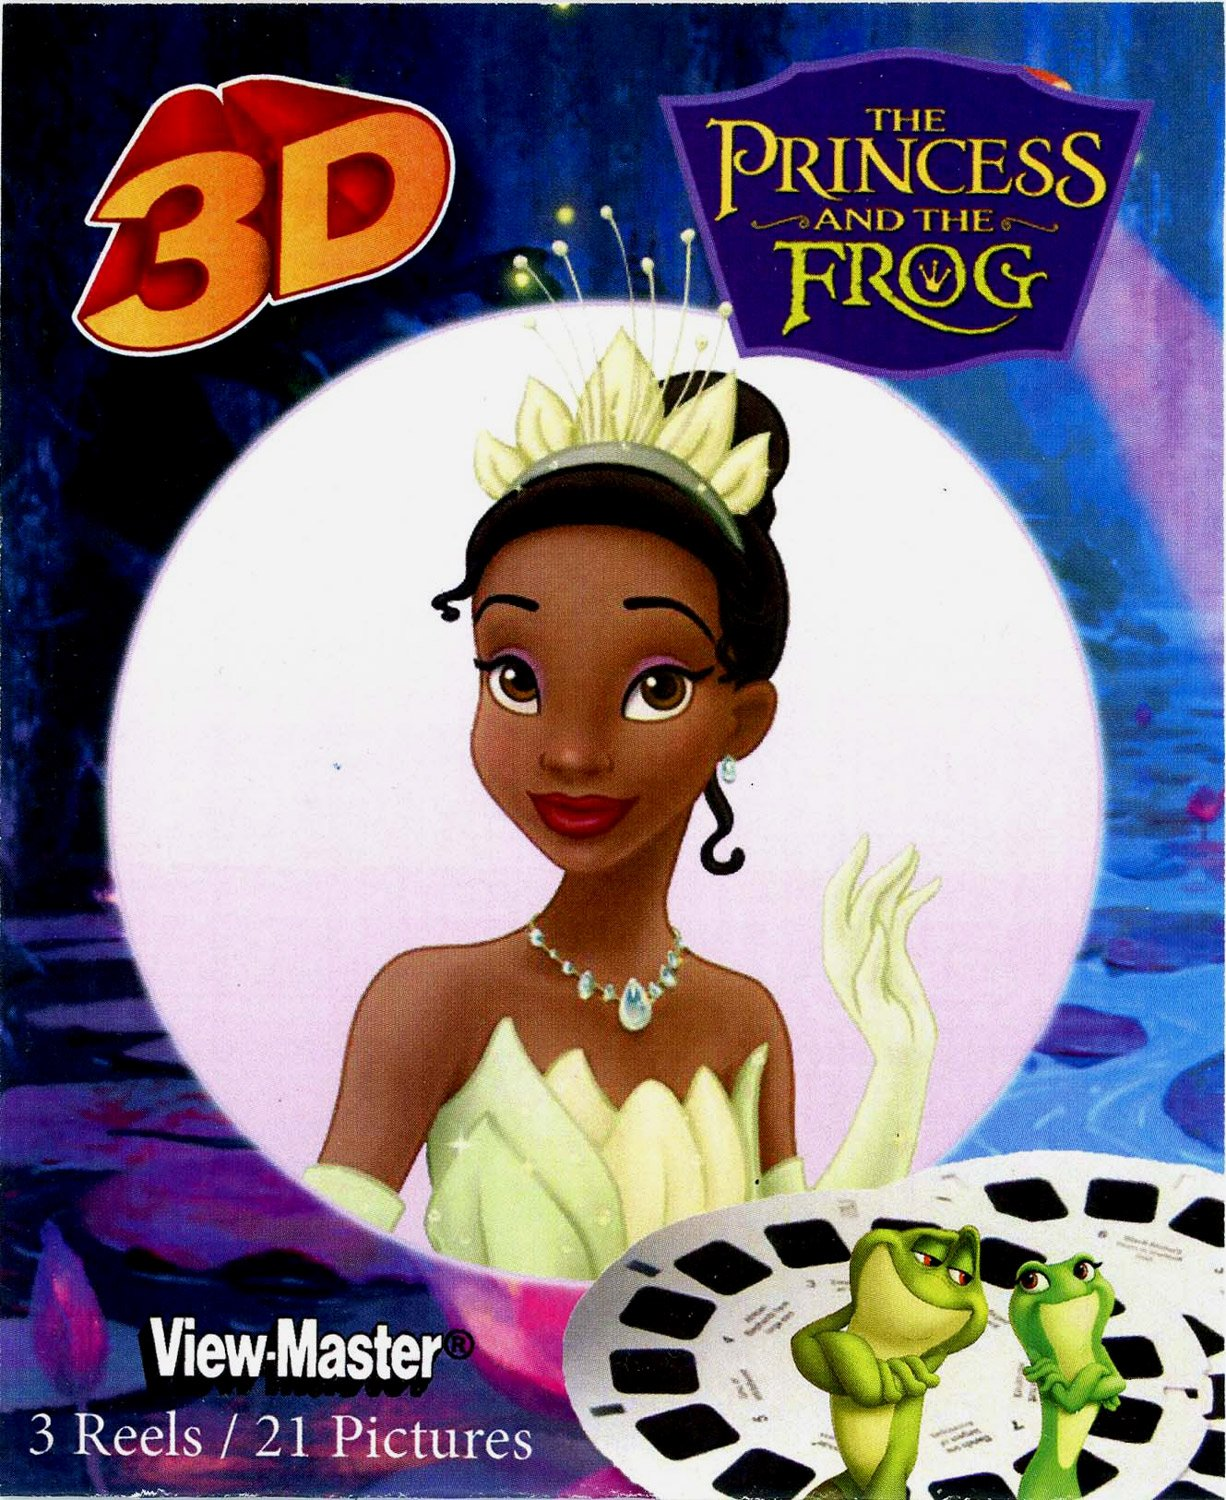 ViewMaster 3D Reels - Disney Princess and the Frog 3-pack Set by View Master